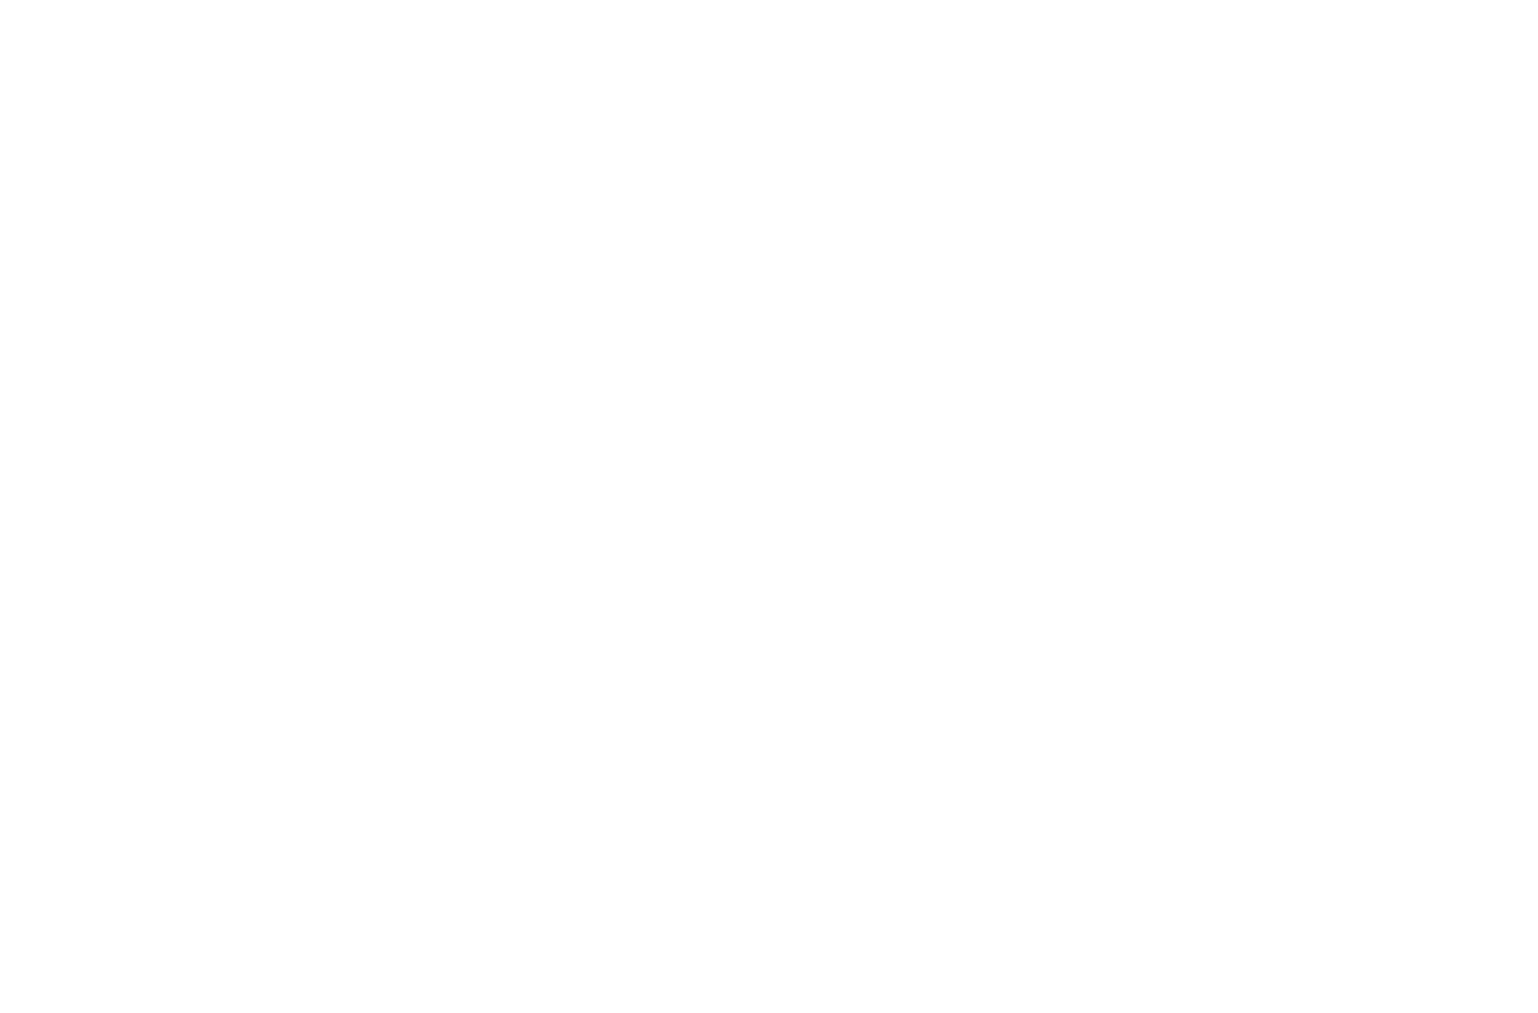 Stella Immobilier